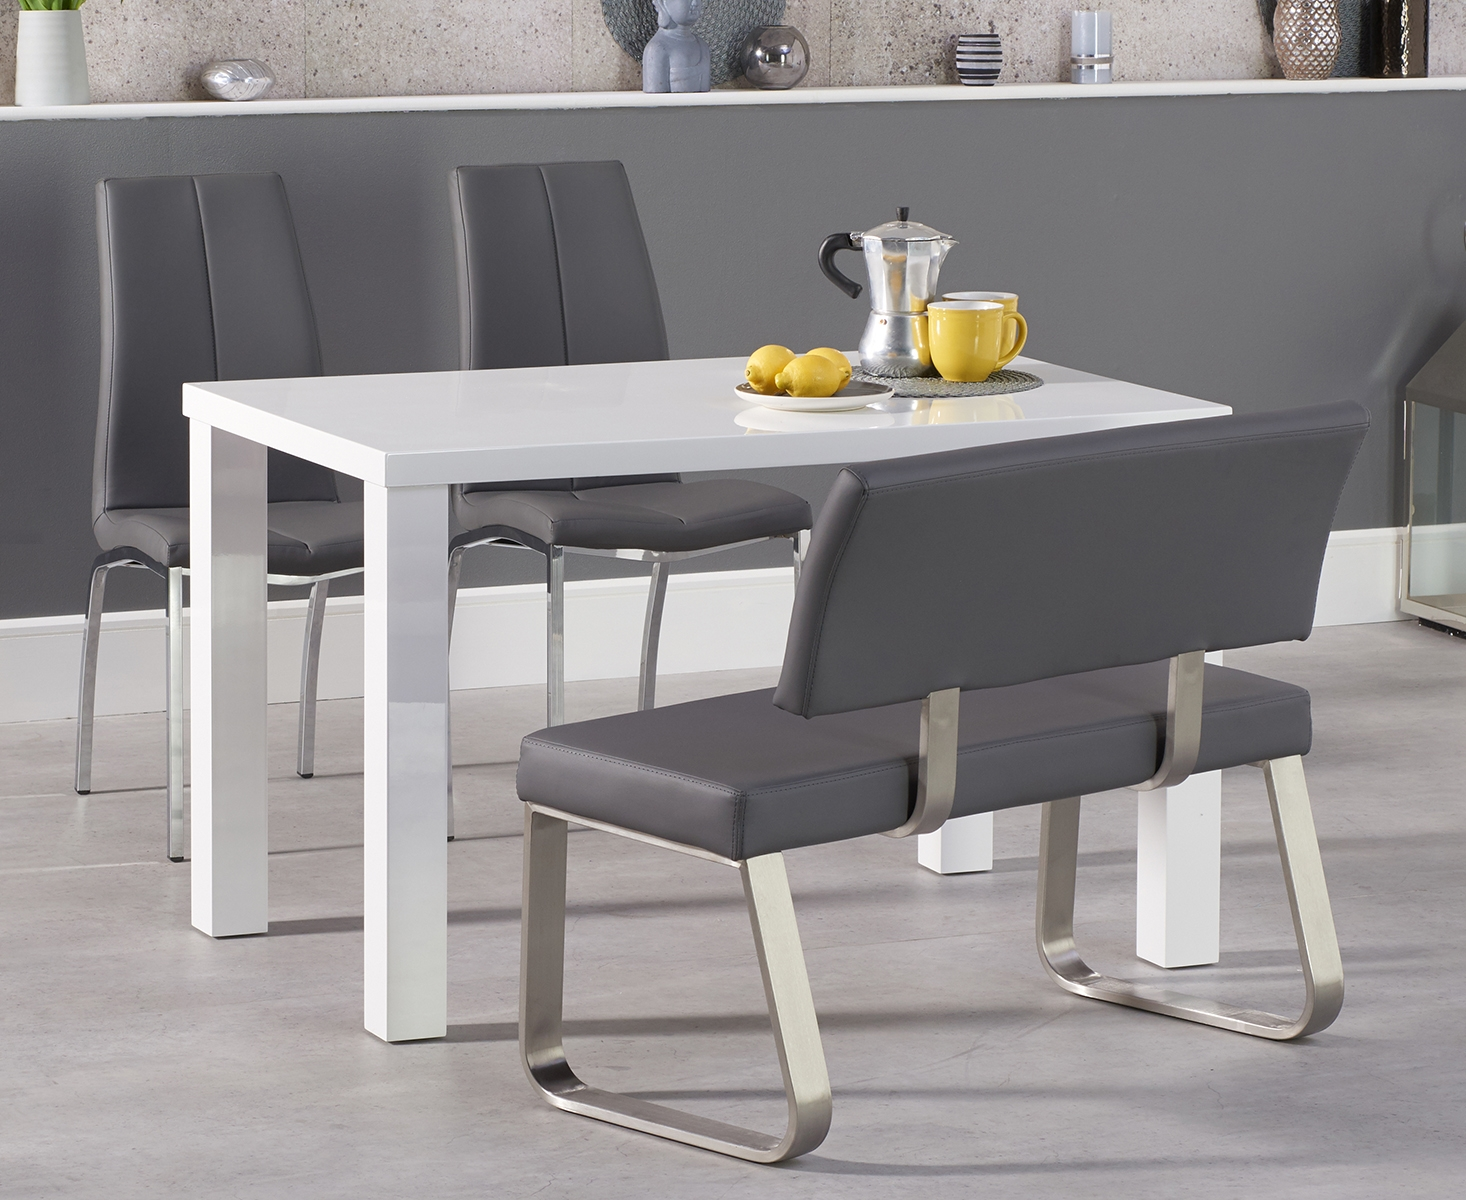 An image of Atlanta 120cm White High Gloss Dining Table with Cavello Chairs and Malaga Grey ...